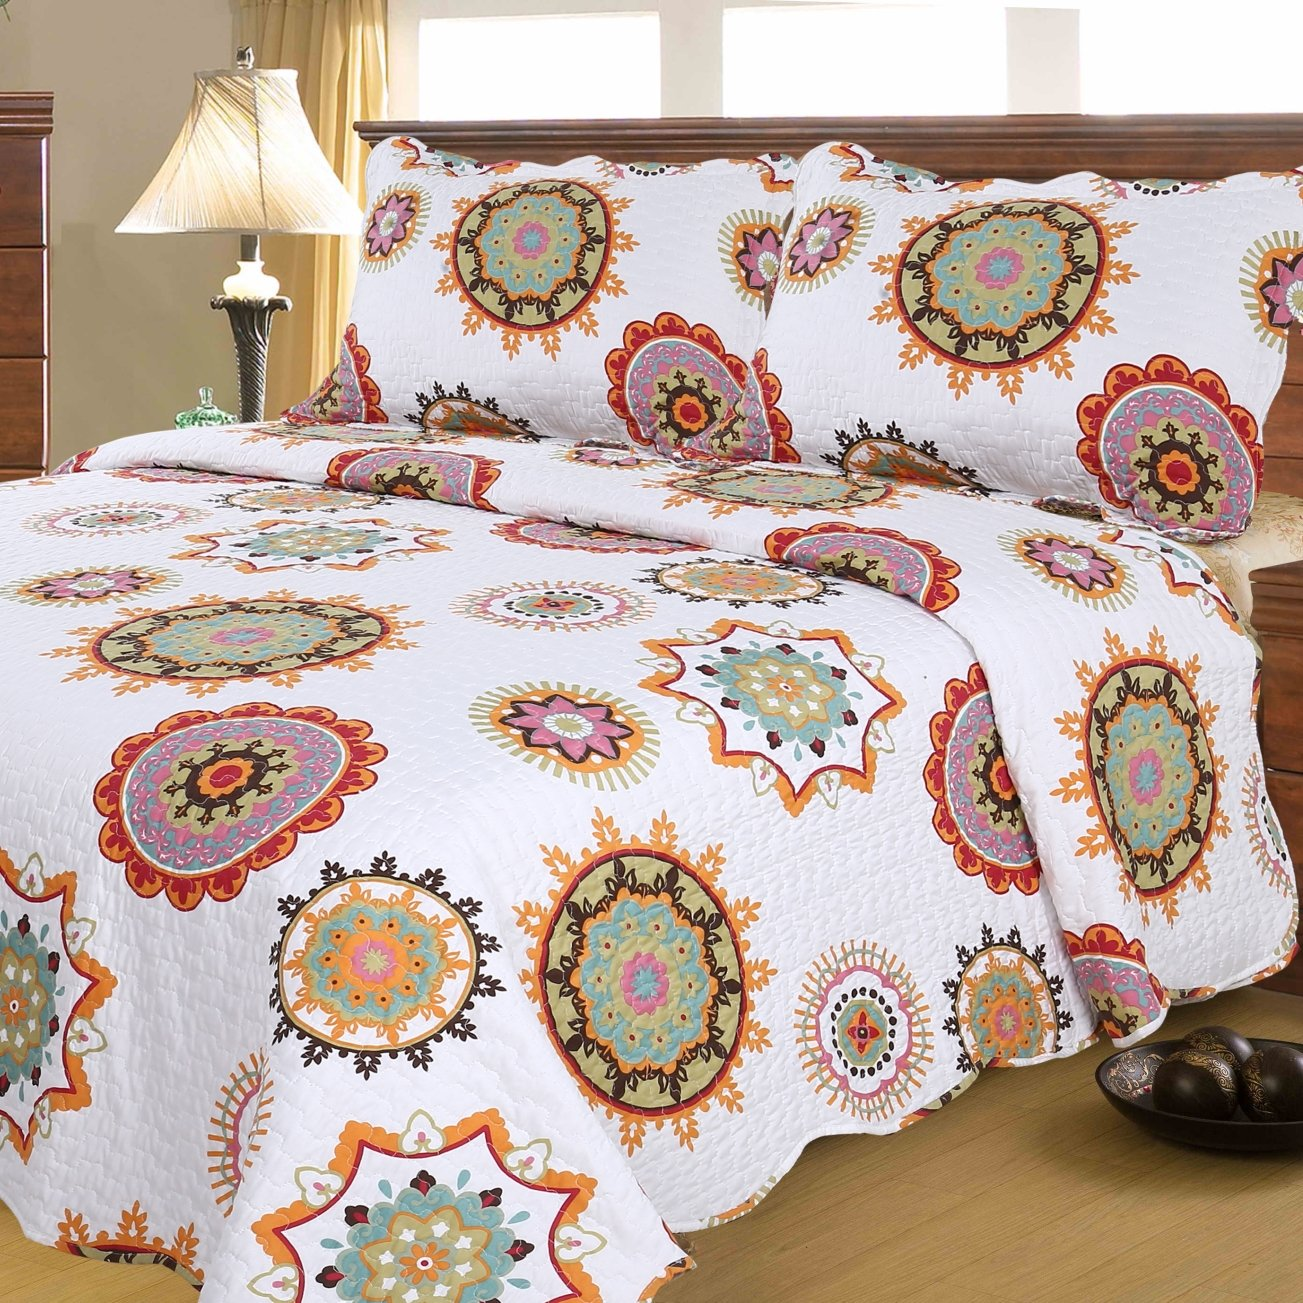 Mohap Floral Quilt Set 3 Pieces Queen Size Soft and Breathable for All Season Bedspread 1 Quilt and 2 Matching Shams Sunflower Pattern by Mohap